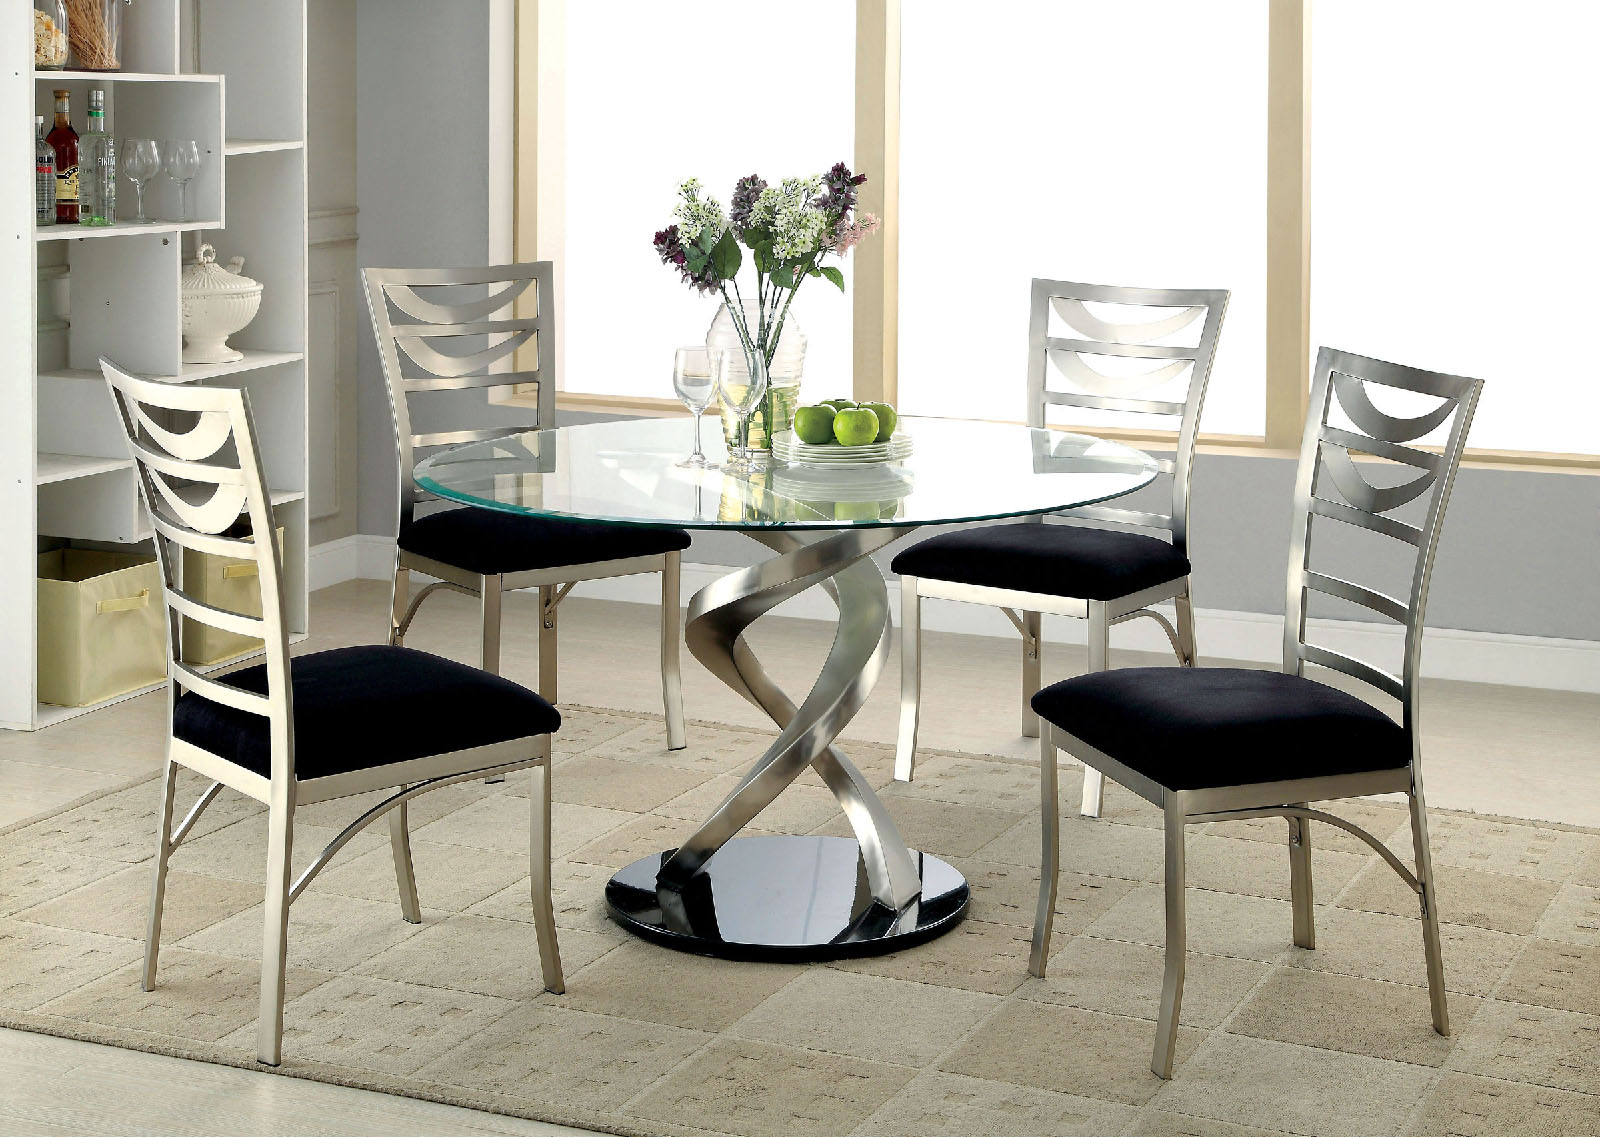 Roxo round glass dining table by furniture of america for Furniture of america dallas texas